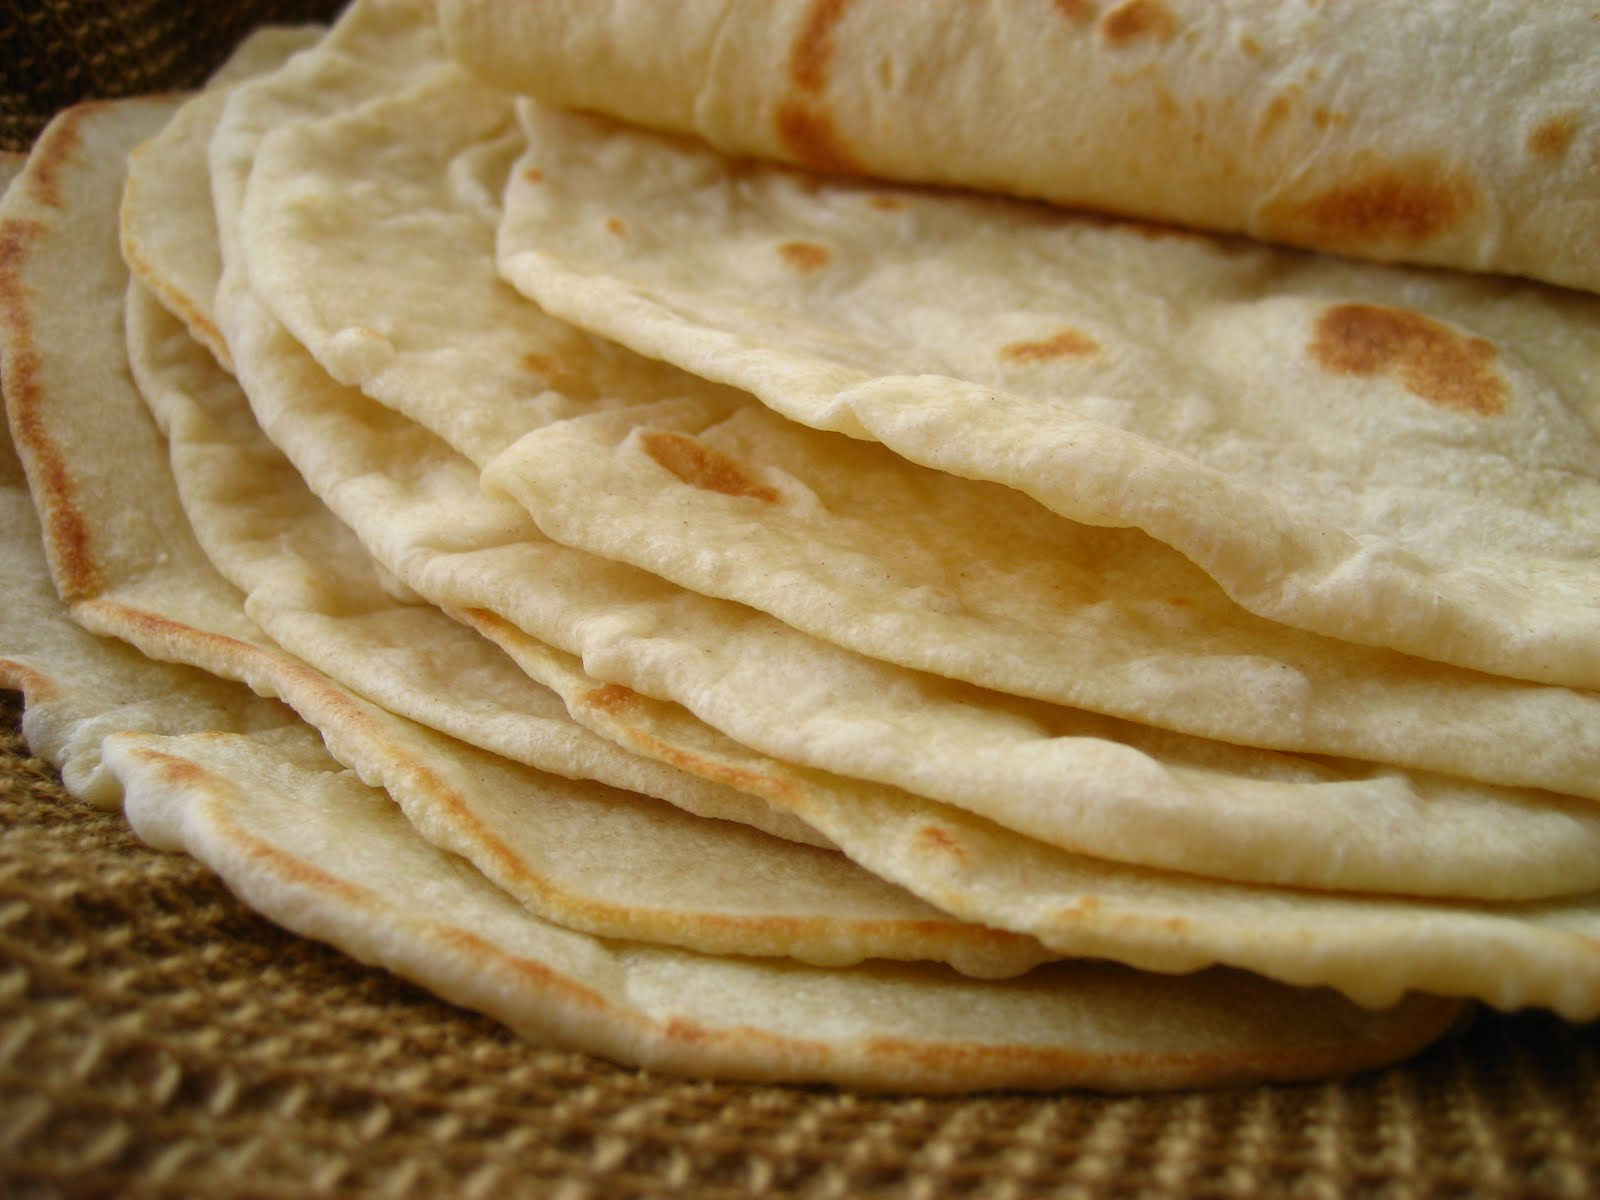 flour tortillas wallpaper pictures 62296 1600x1200 px ~ hdwallsource